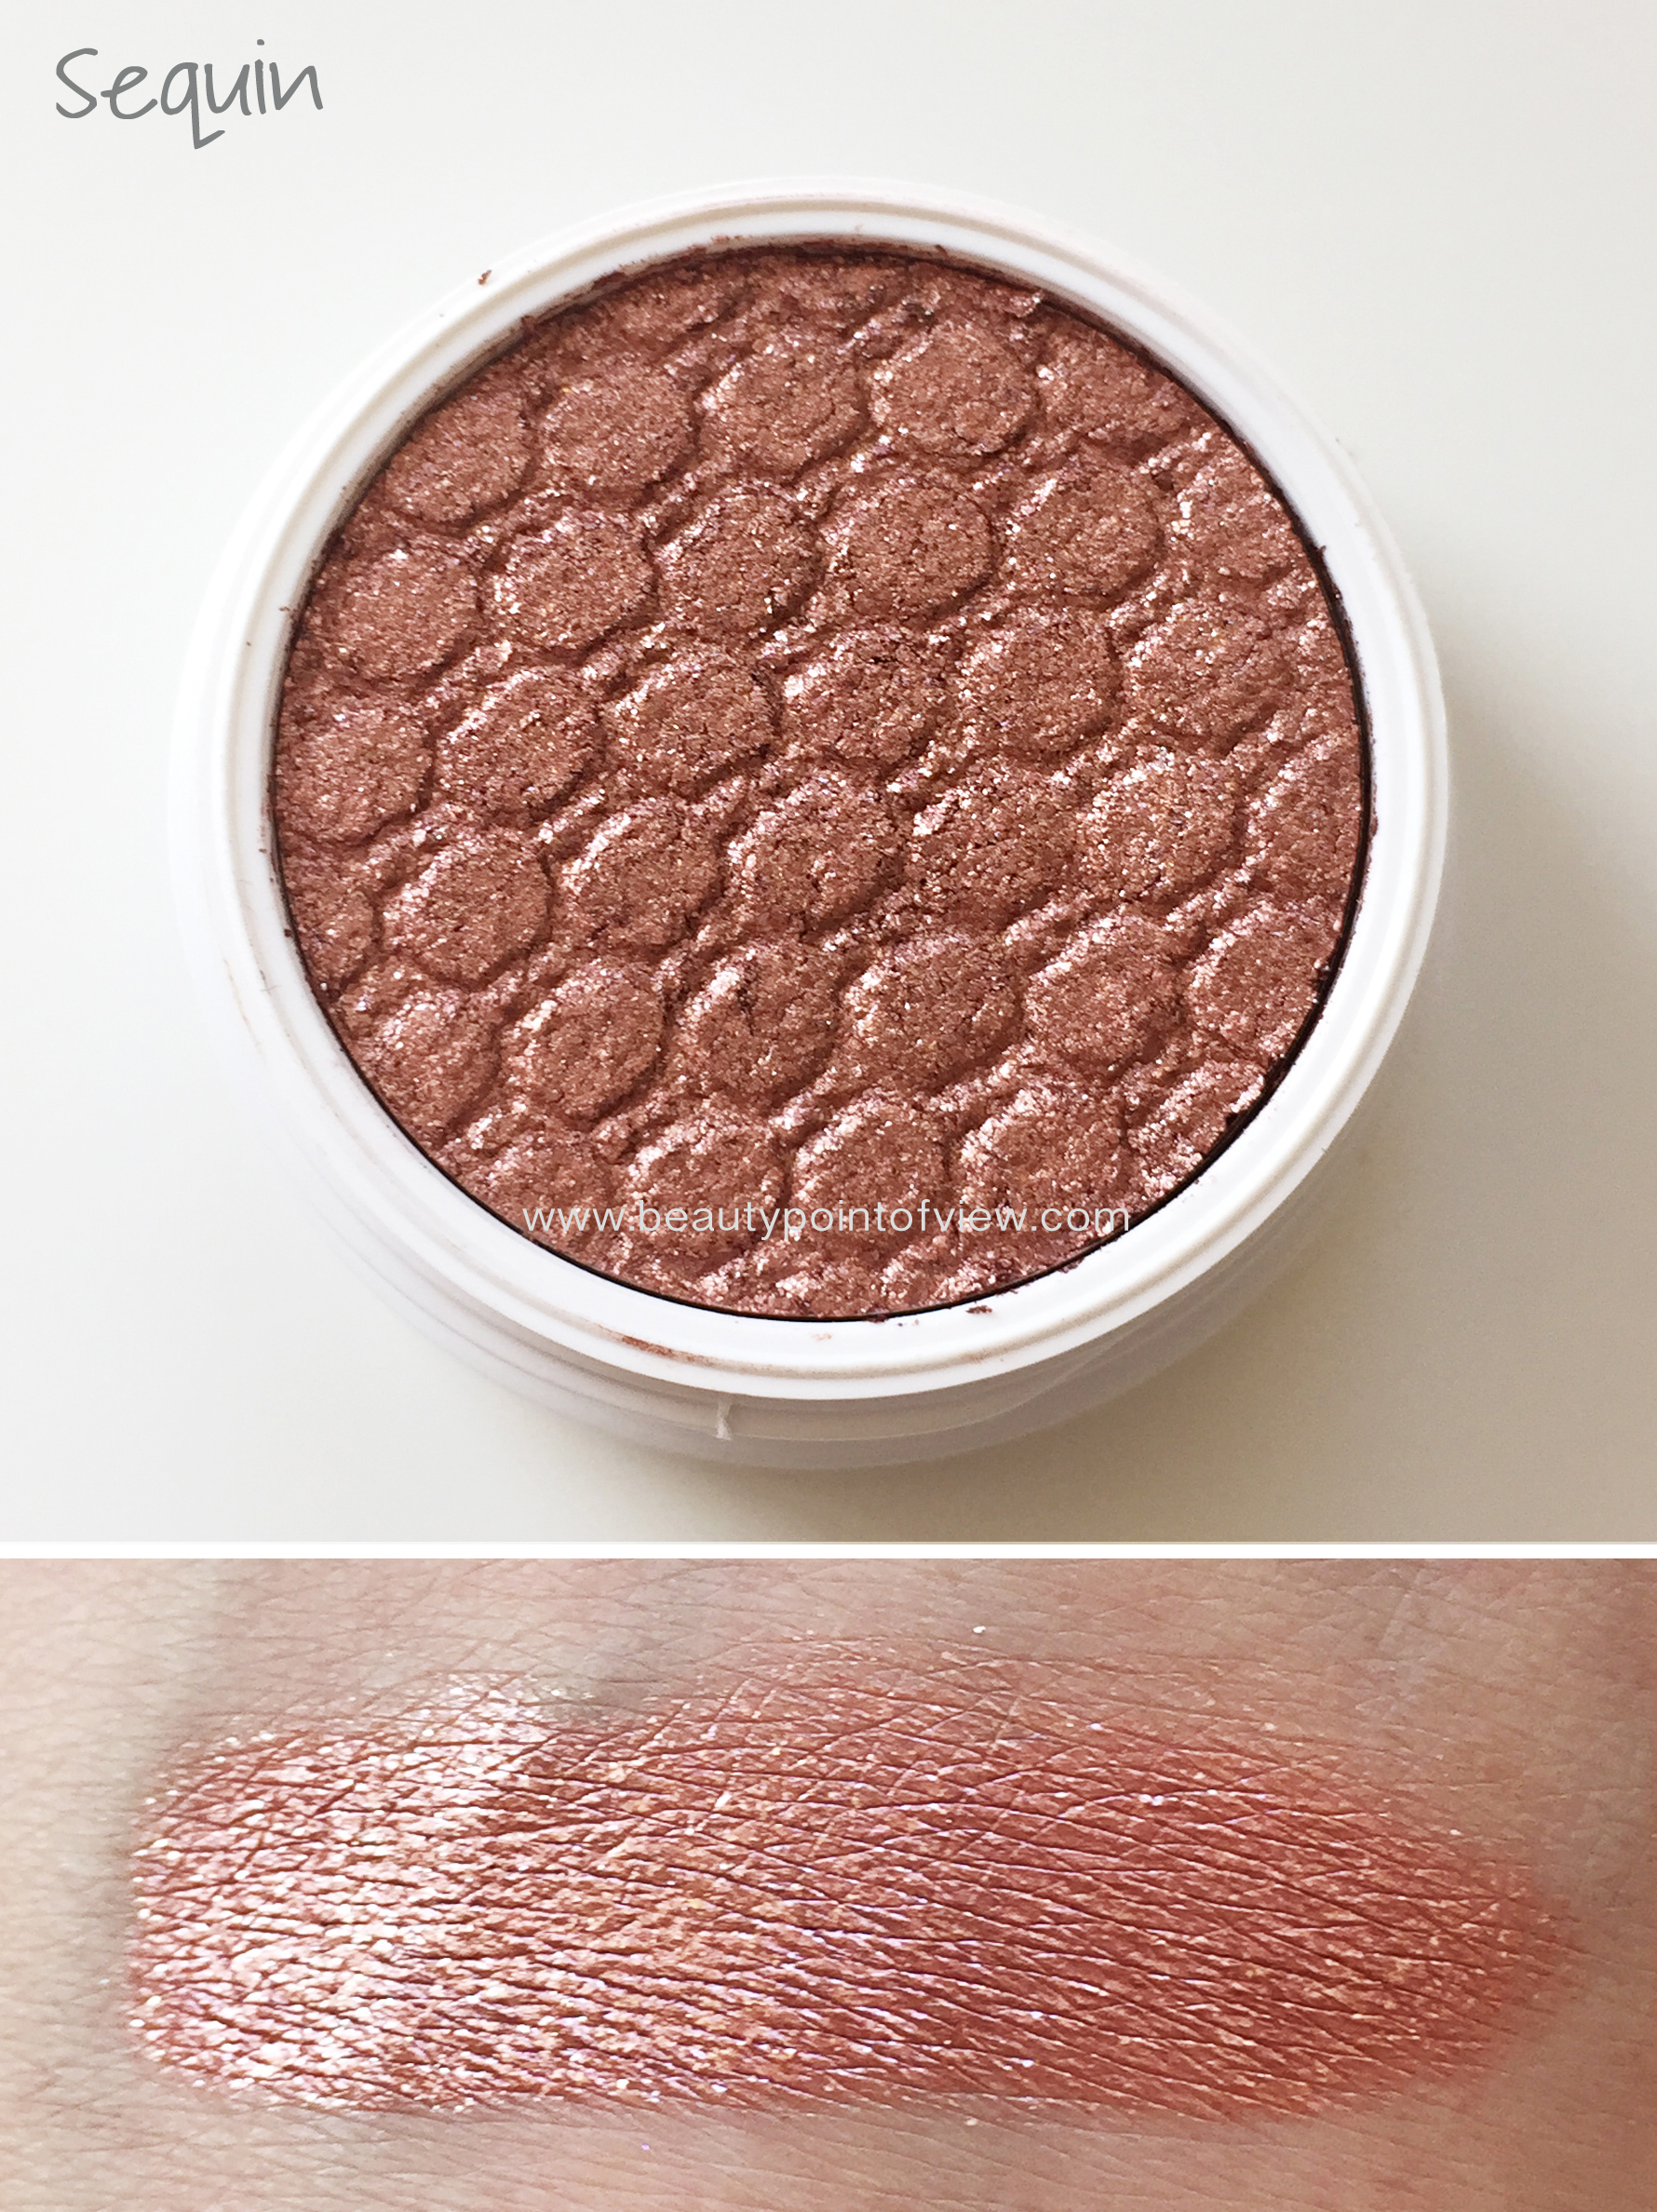 Colourpop Super Shock Eyeshadows - Sequin